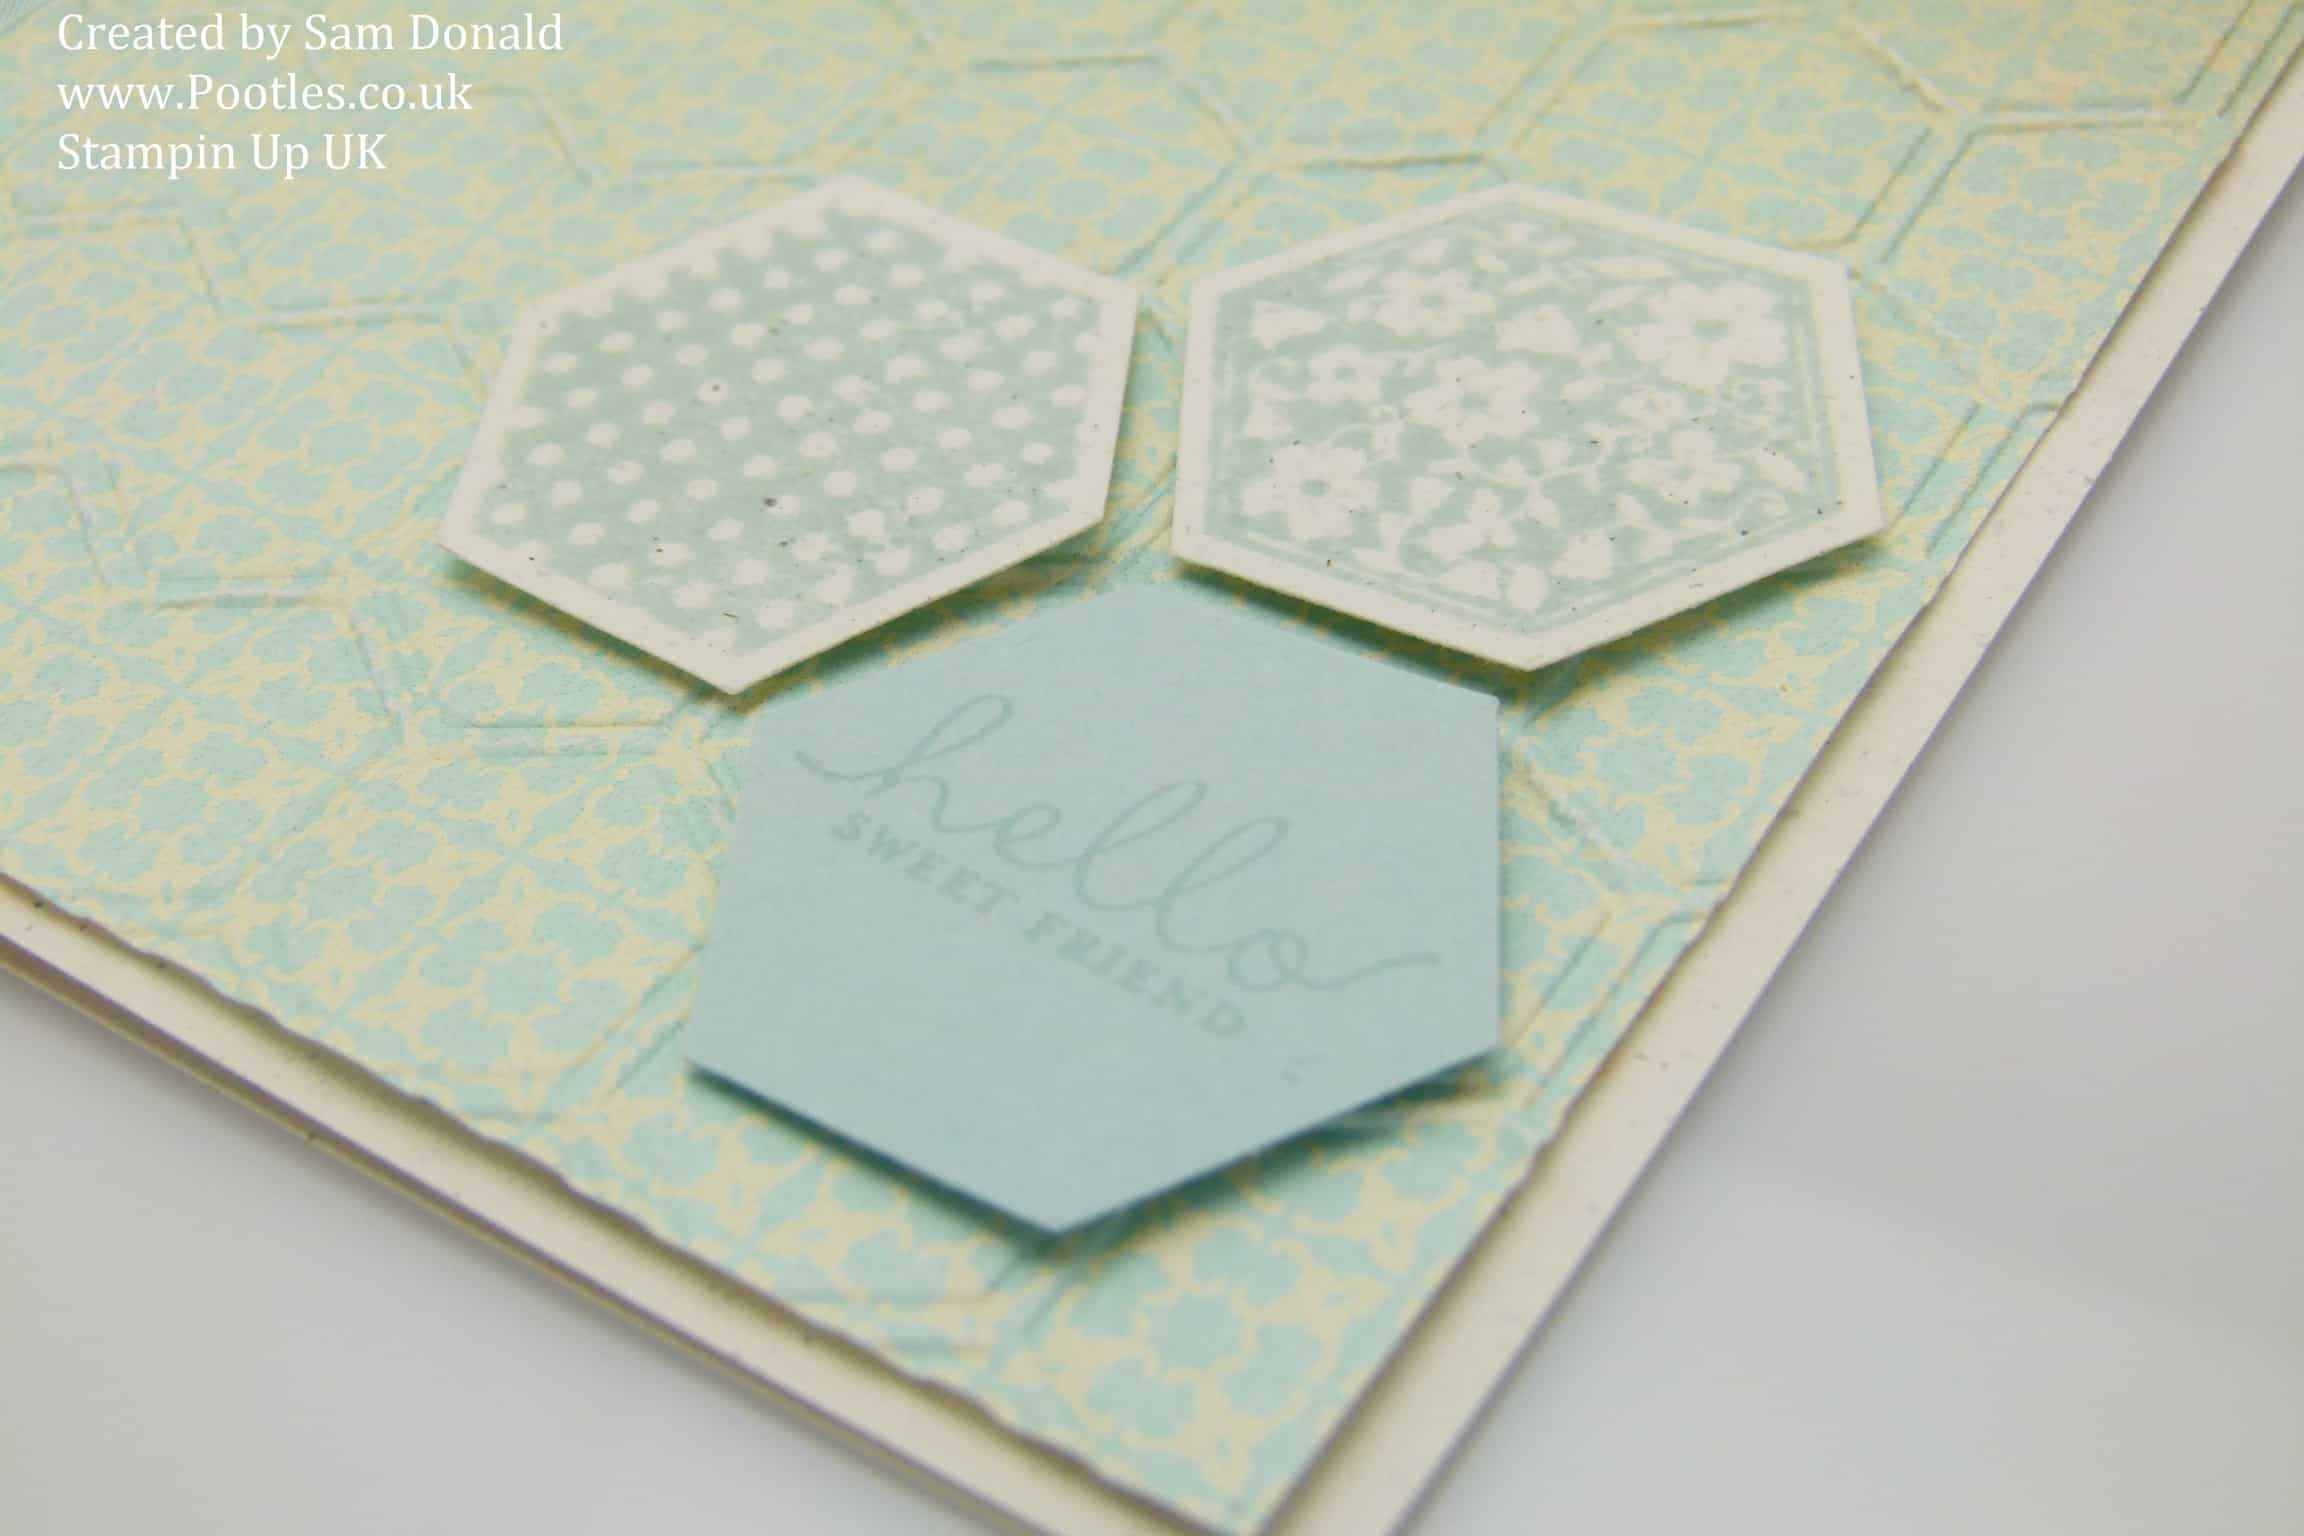 Pootles Stampin Up UK Afternoon Picnic Soft Sky (1)